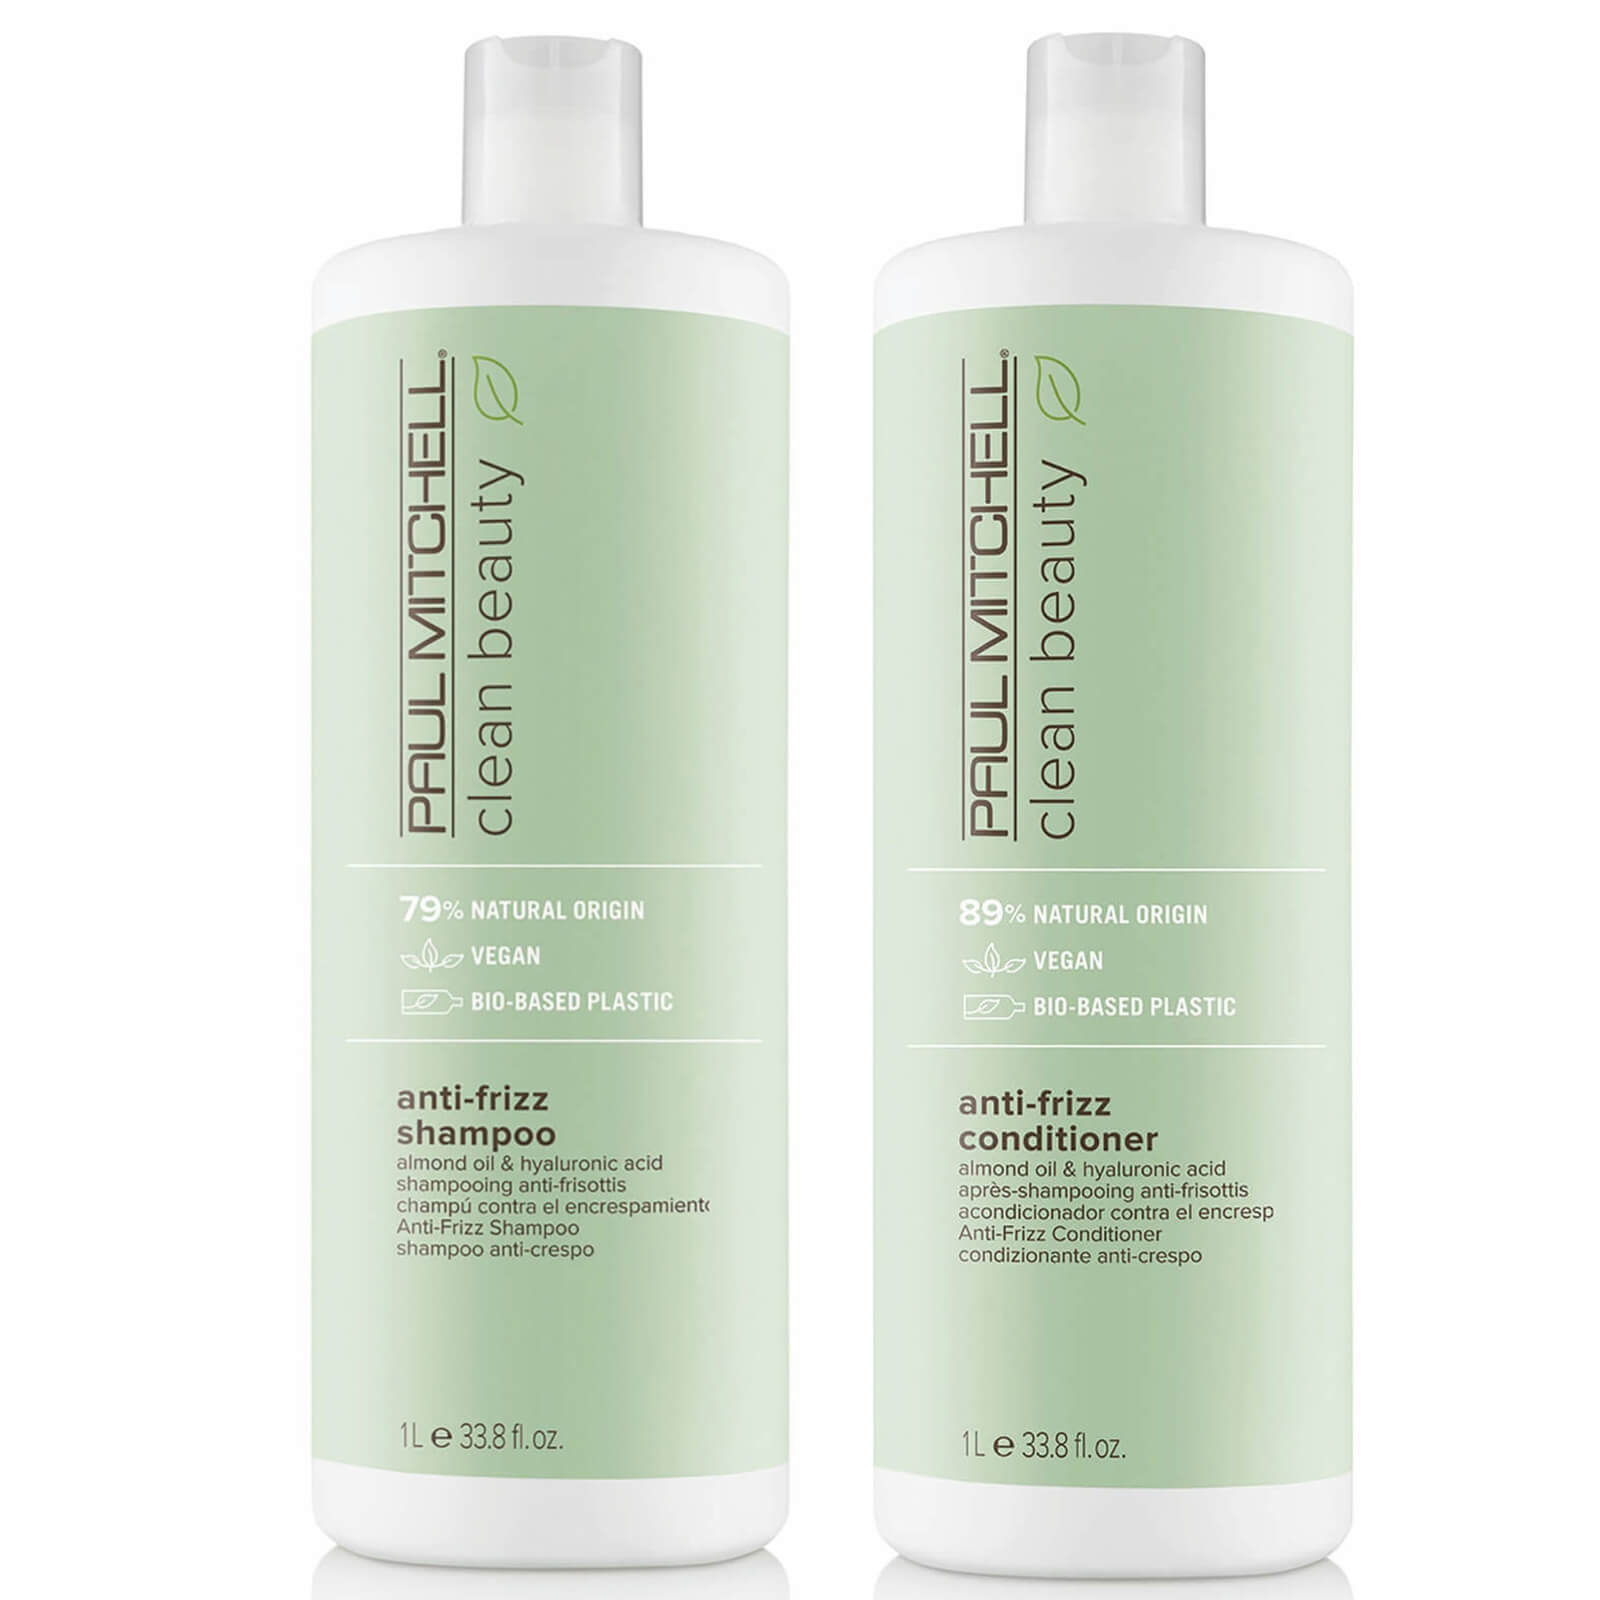 Paul Mitchell Clean Beauty Anti-Frizz Shampoo and Conditioner Supersize Set